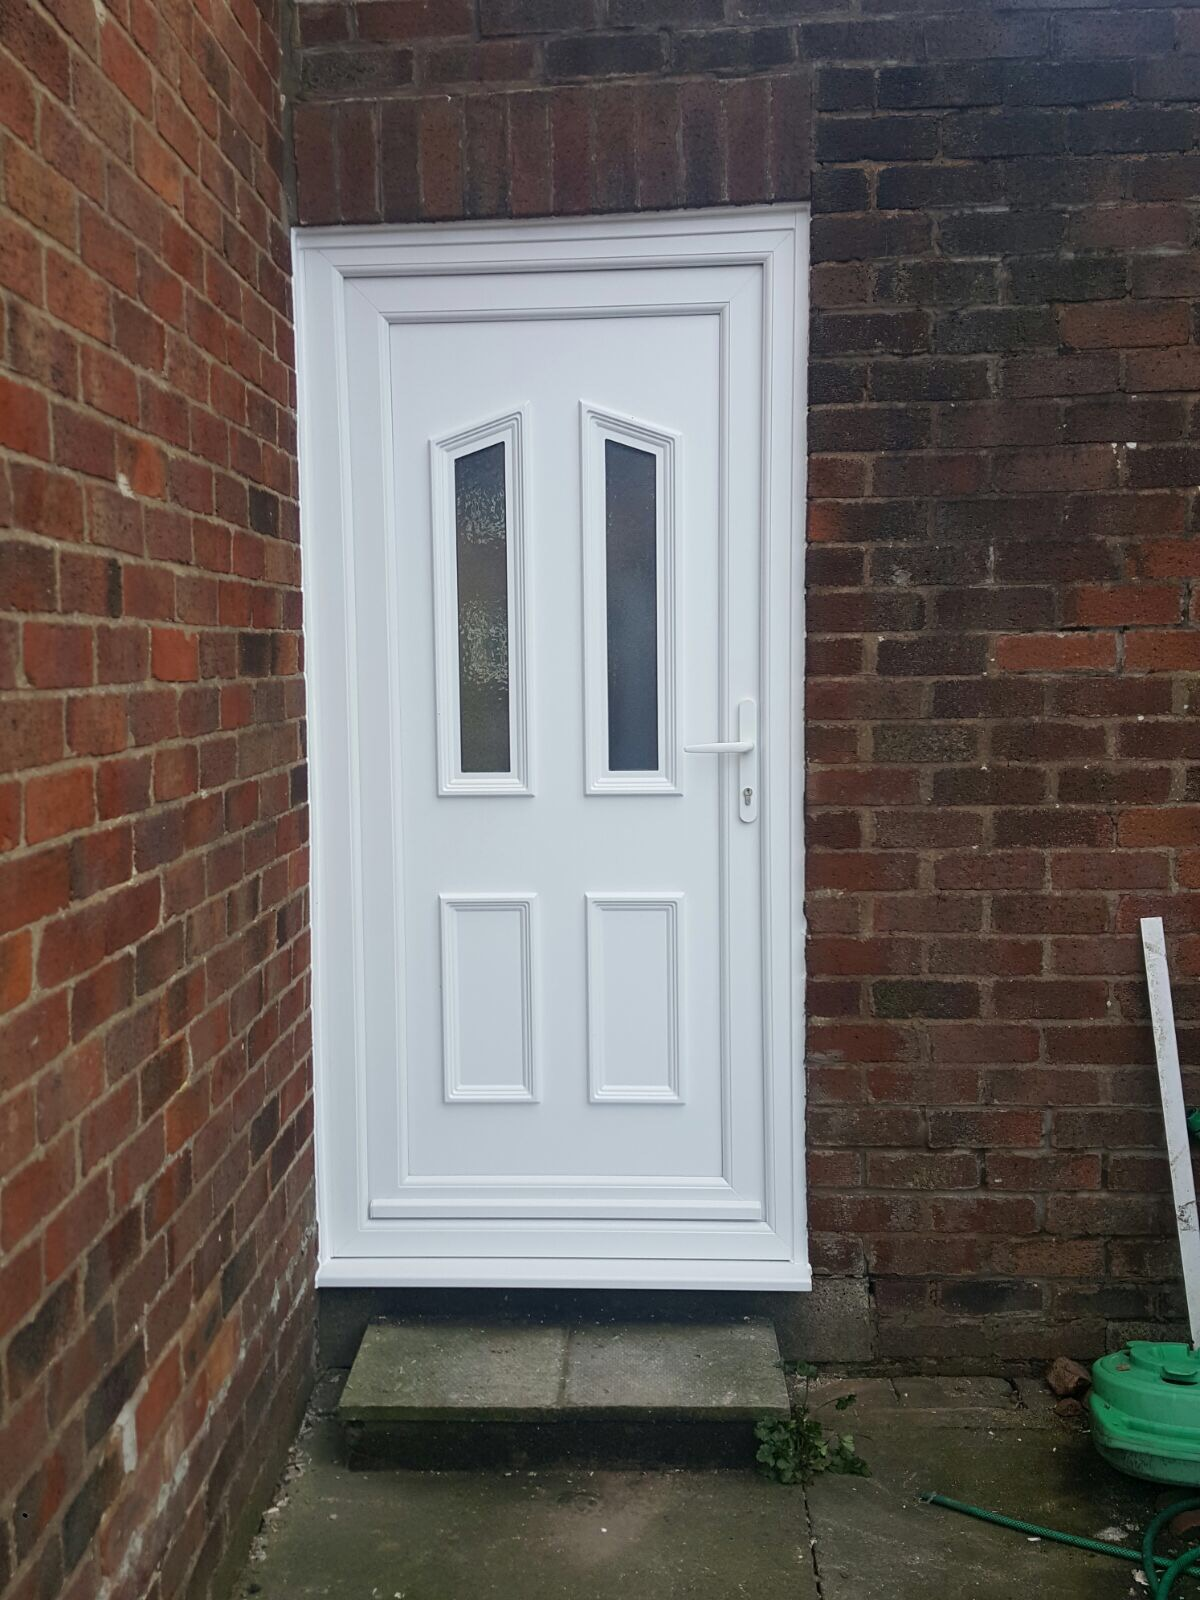 10th march 2017 upvc composite door installations for Composite windows